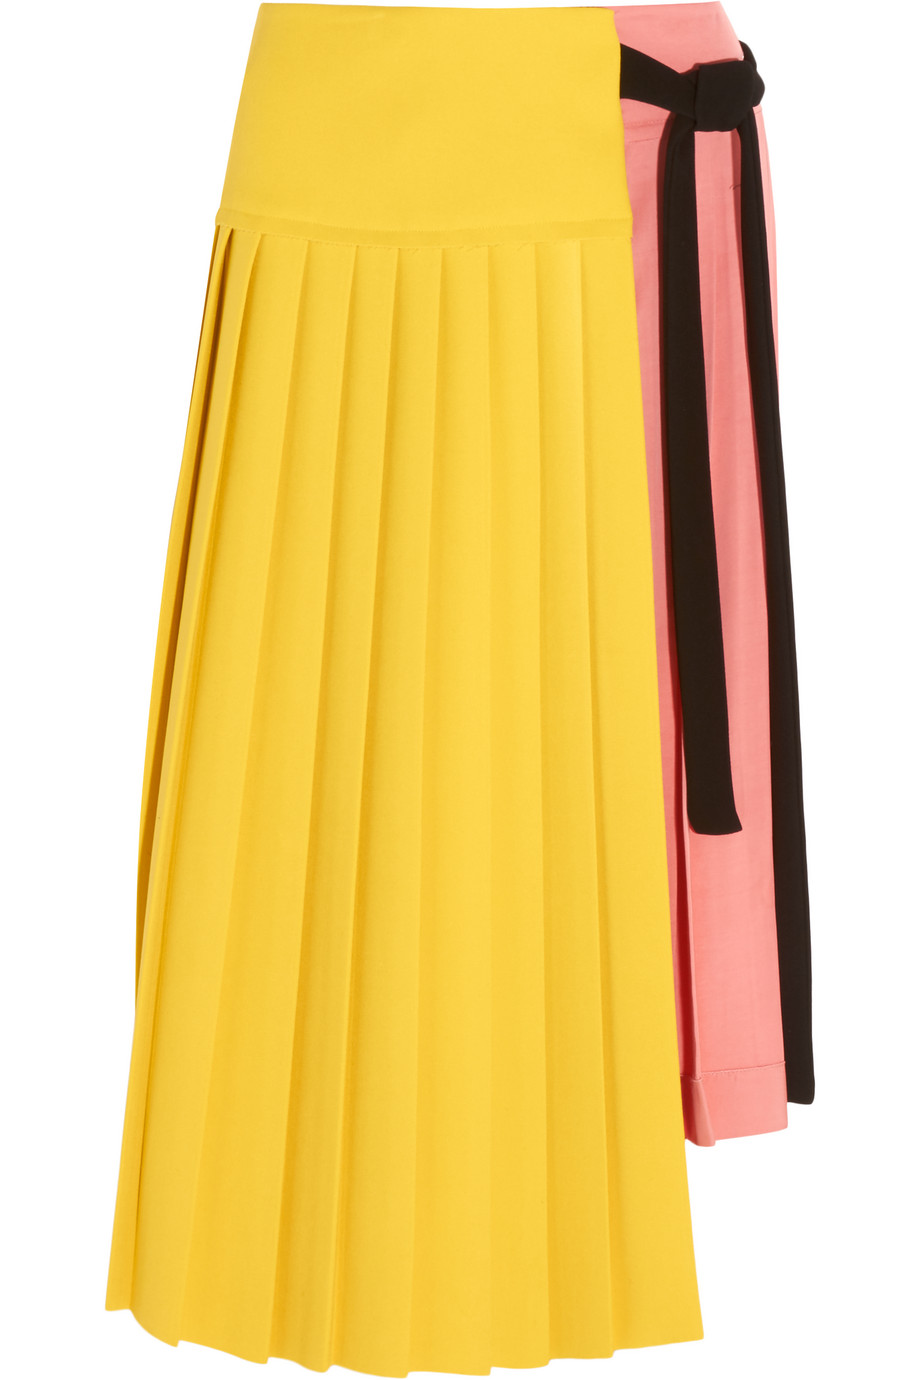 Marni Pleated Crepe and Satin Wrap Skirt, Yellow/Pink, Women's, Size: 38